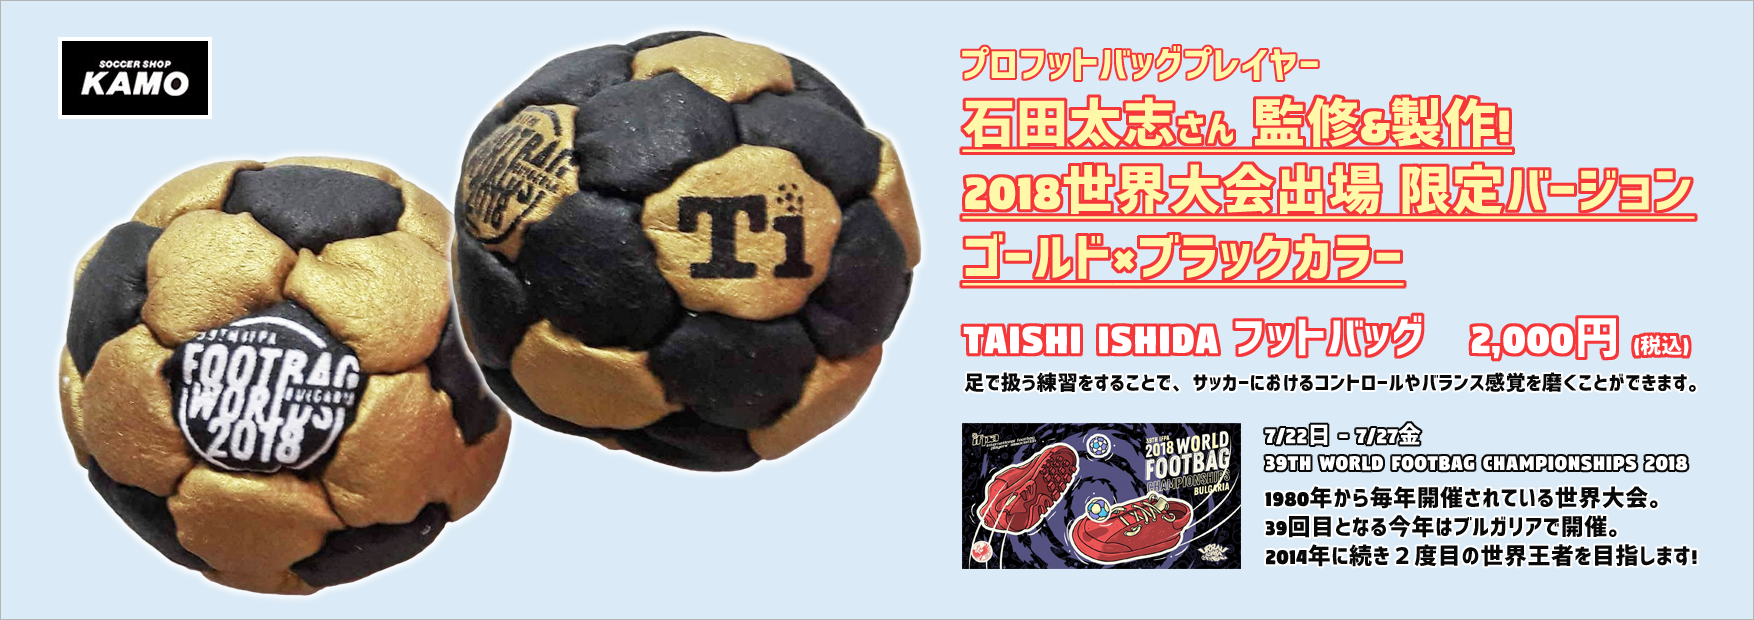 Footbag 201806 limited